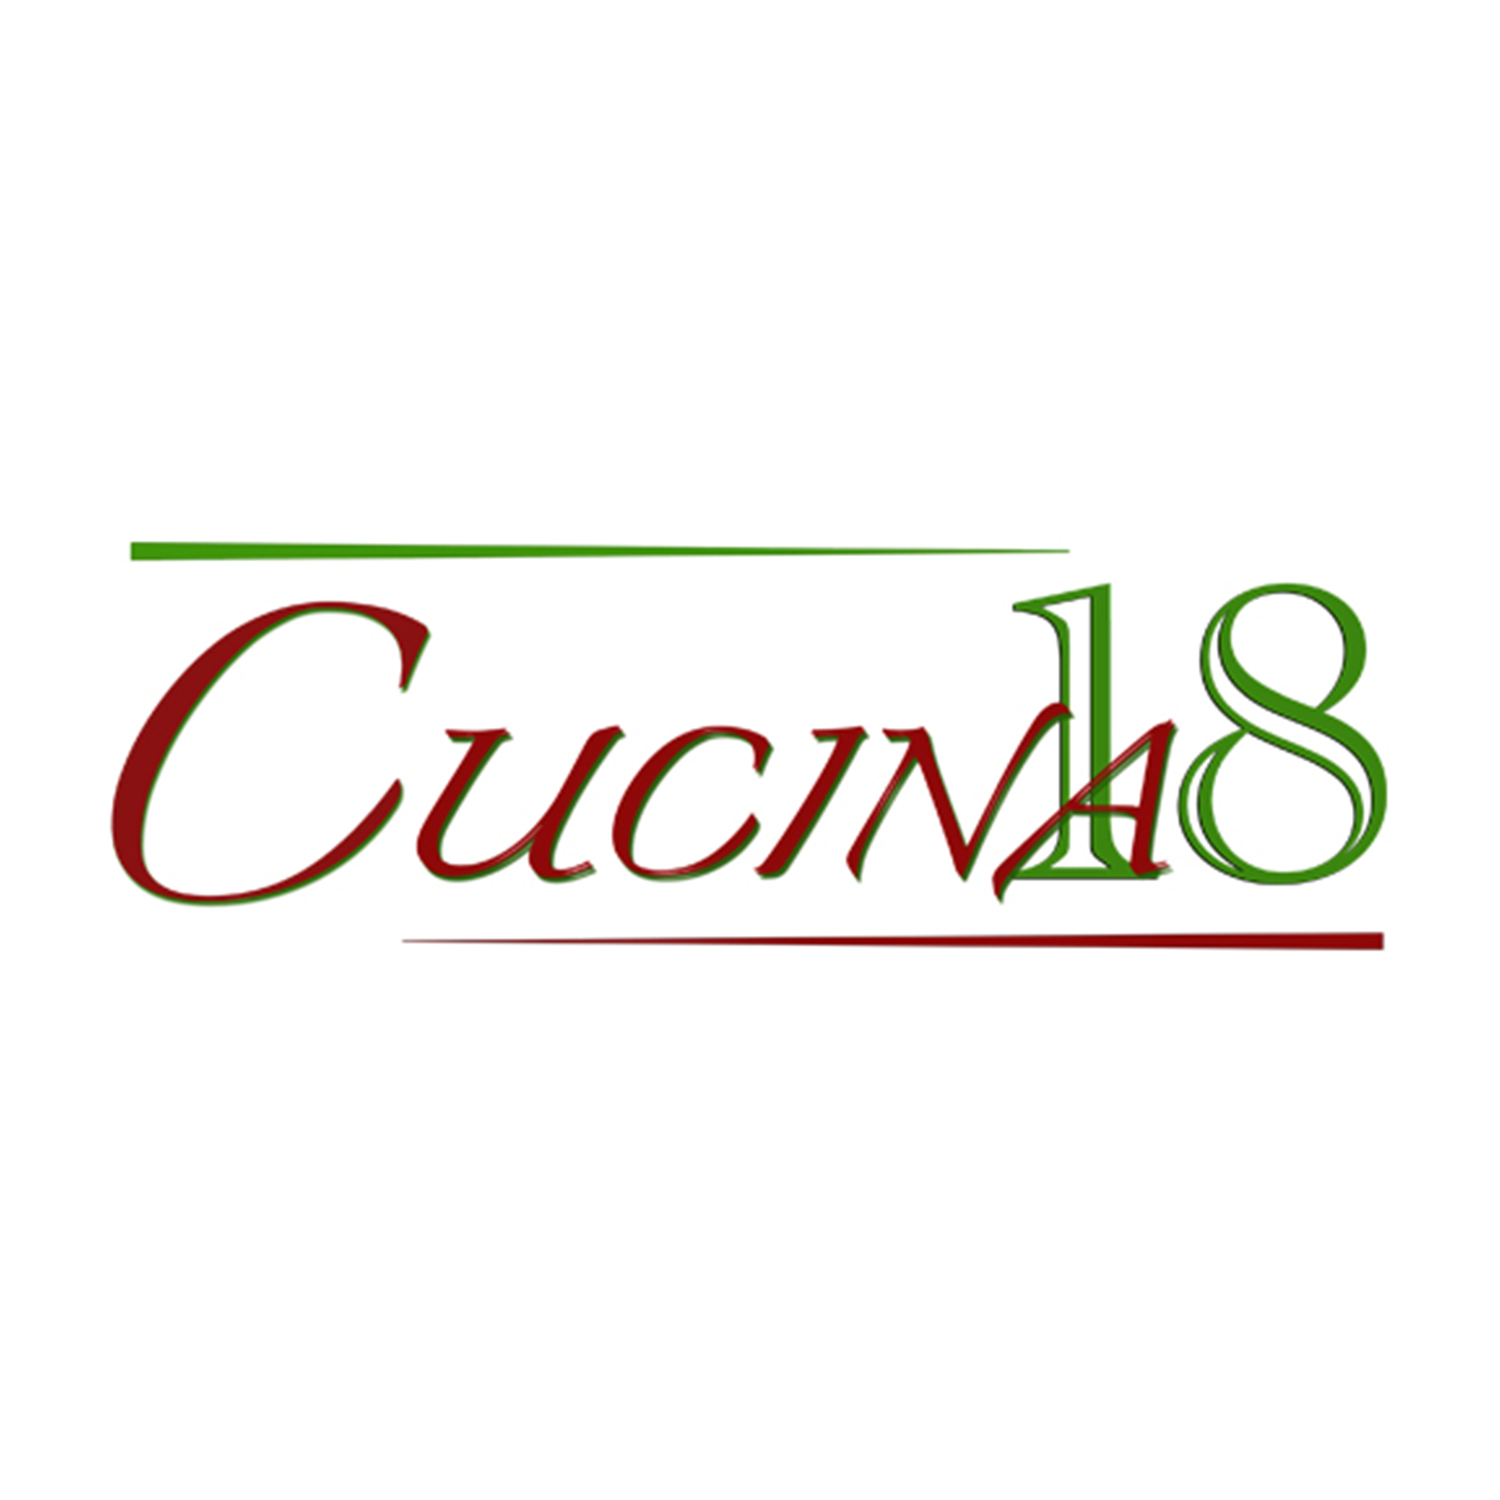 CUCINA 18 : farm to table kitchen, using the finest ingredients for gourmet meals